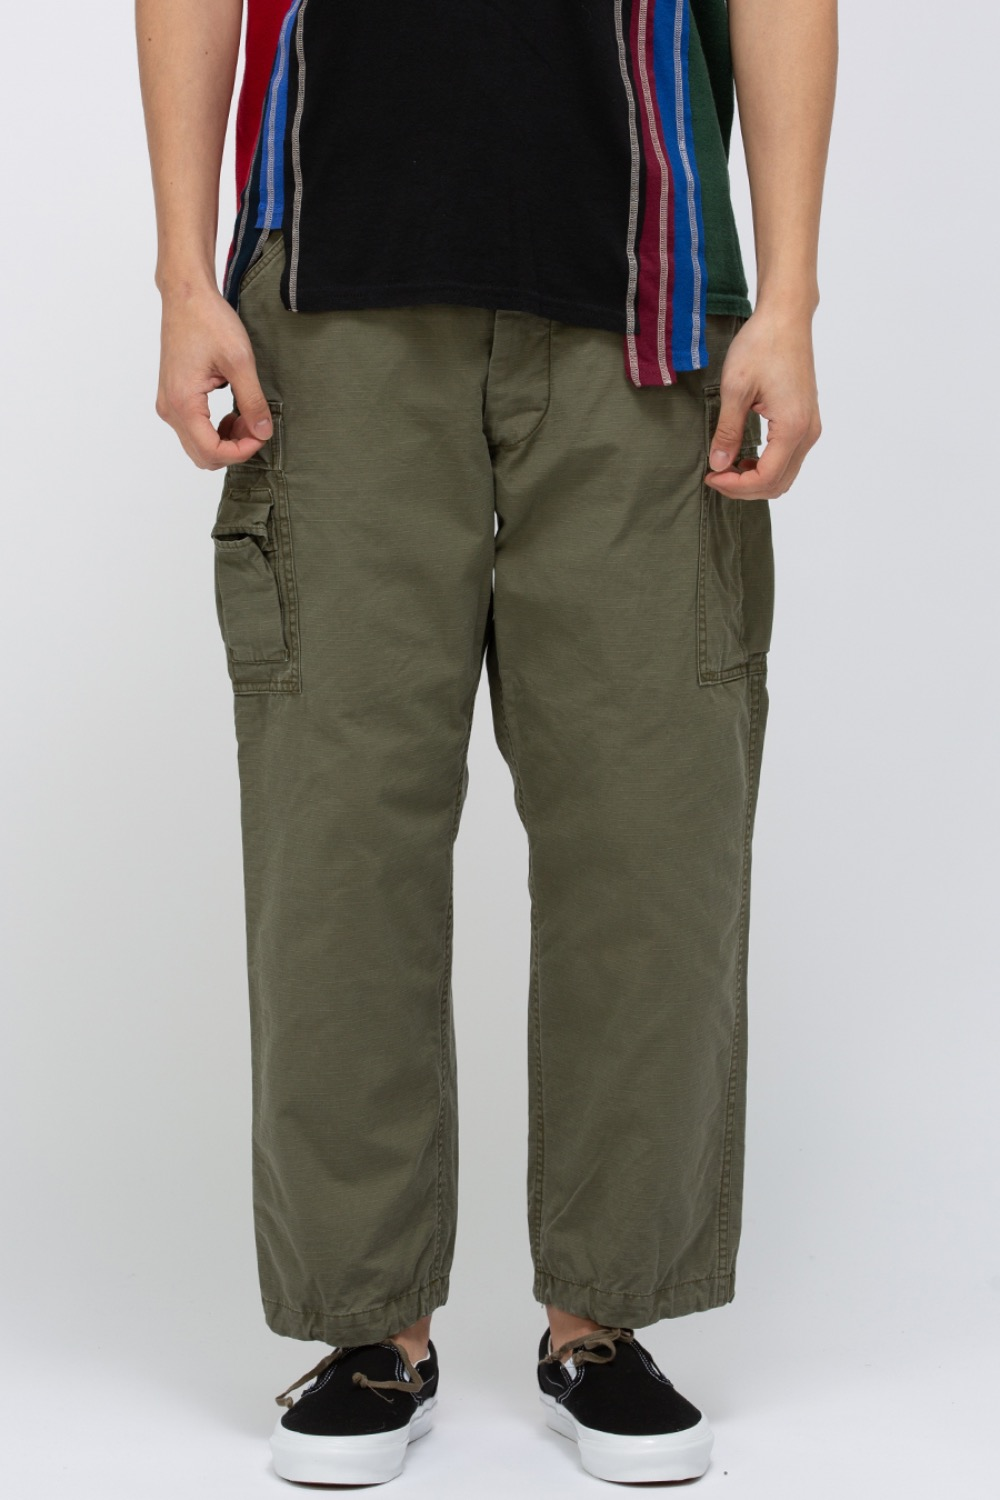 "(FP003)FATIGUE SLACKS ""T-54 SLACKS"" COTTON RIPSTOP OD SPECIAL WASH"